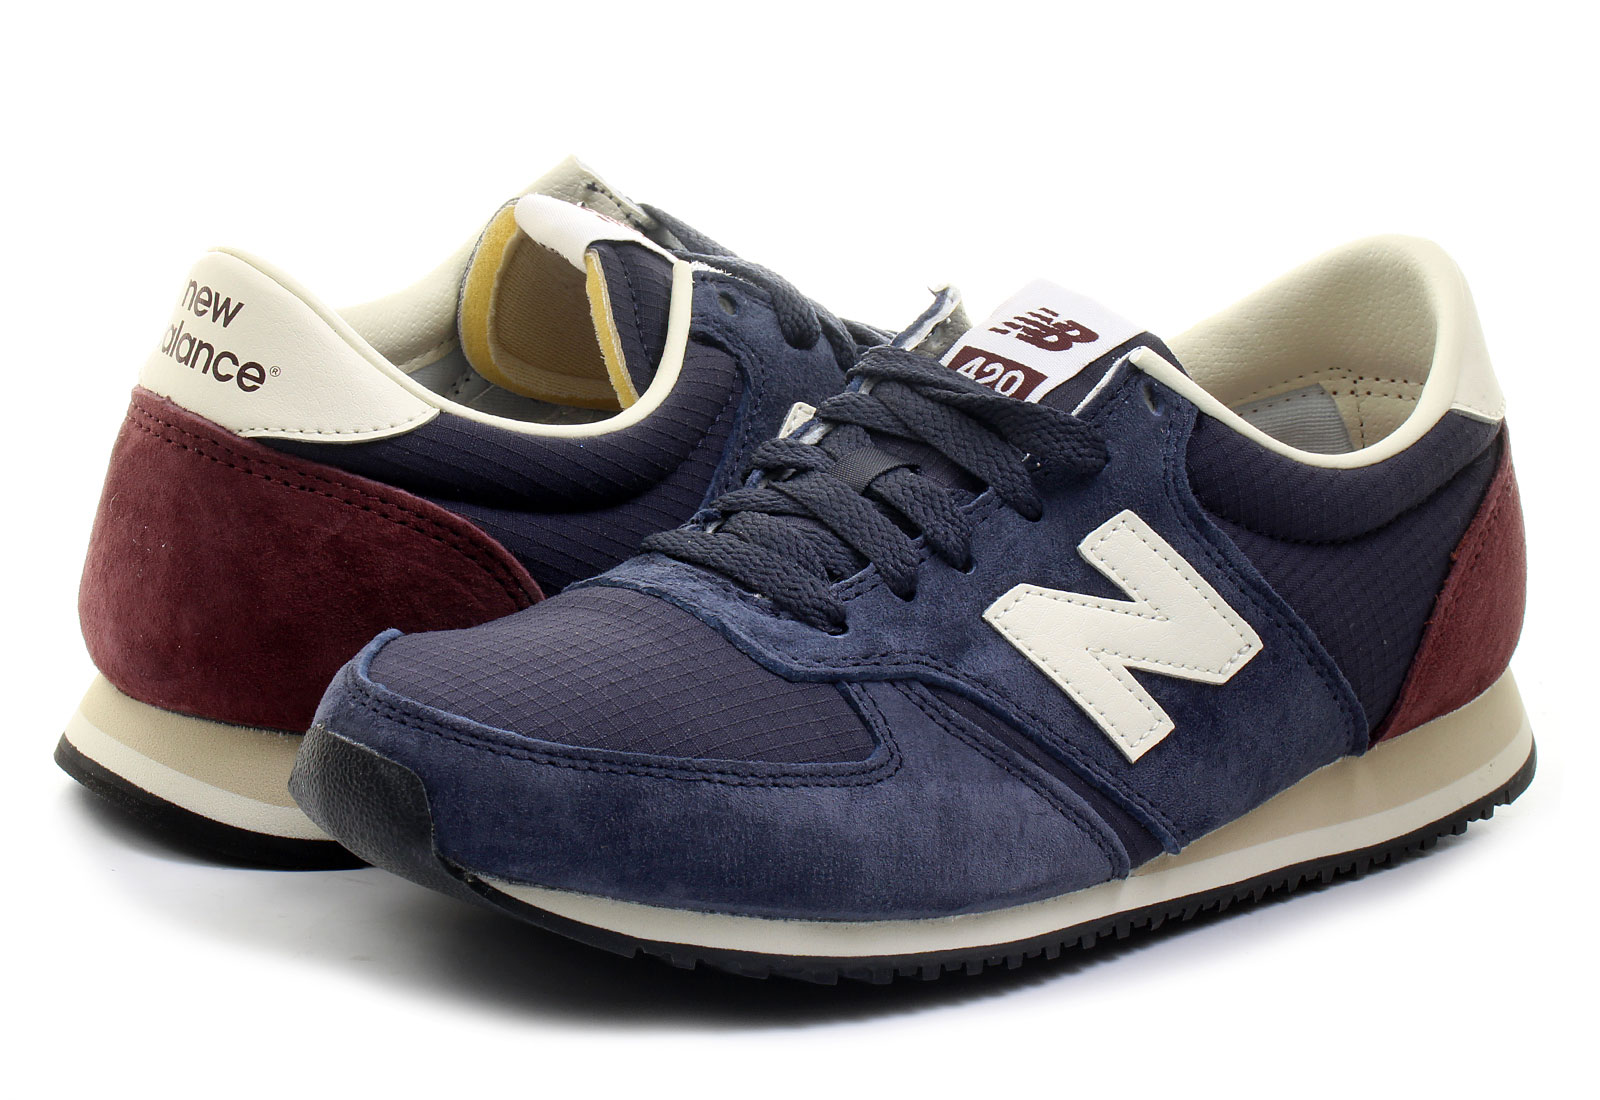 New Balance Shoes - U420 - U420RNB - Online shop for sneakers, shoes ...